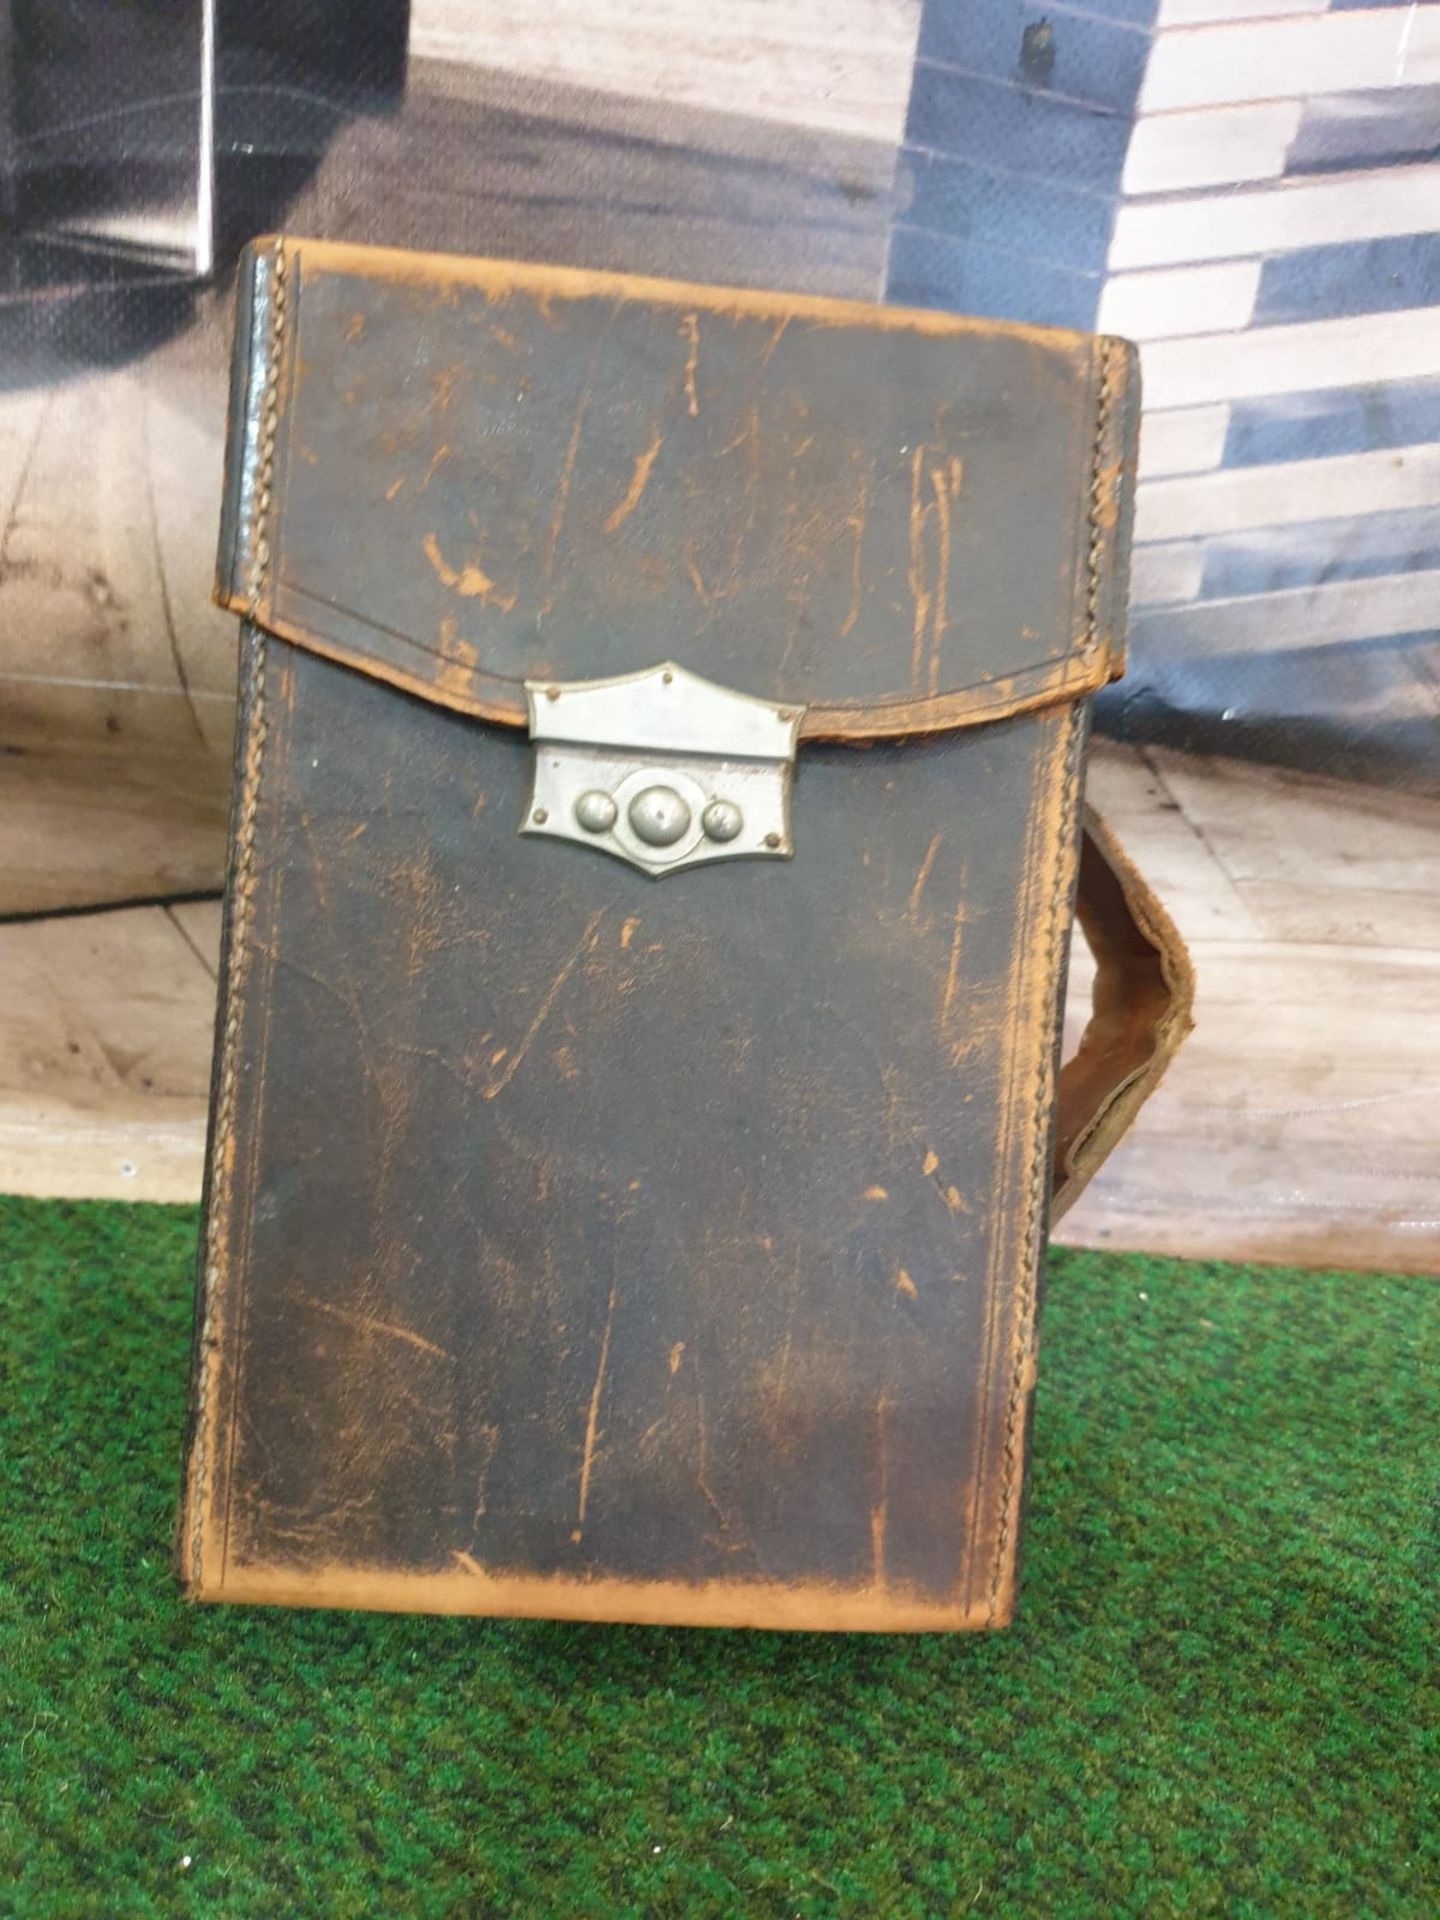 A set of 8 G.W. Bacon & Co VintageLarge Print Road maps in leather slipcase Circa. 1910 - Image 11 of 12